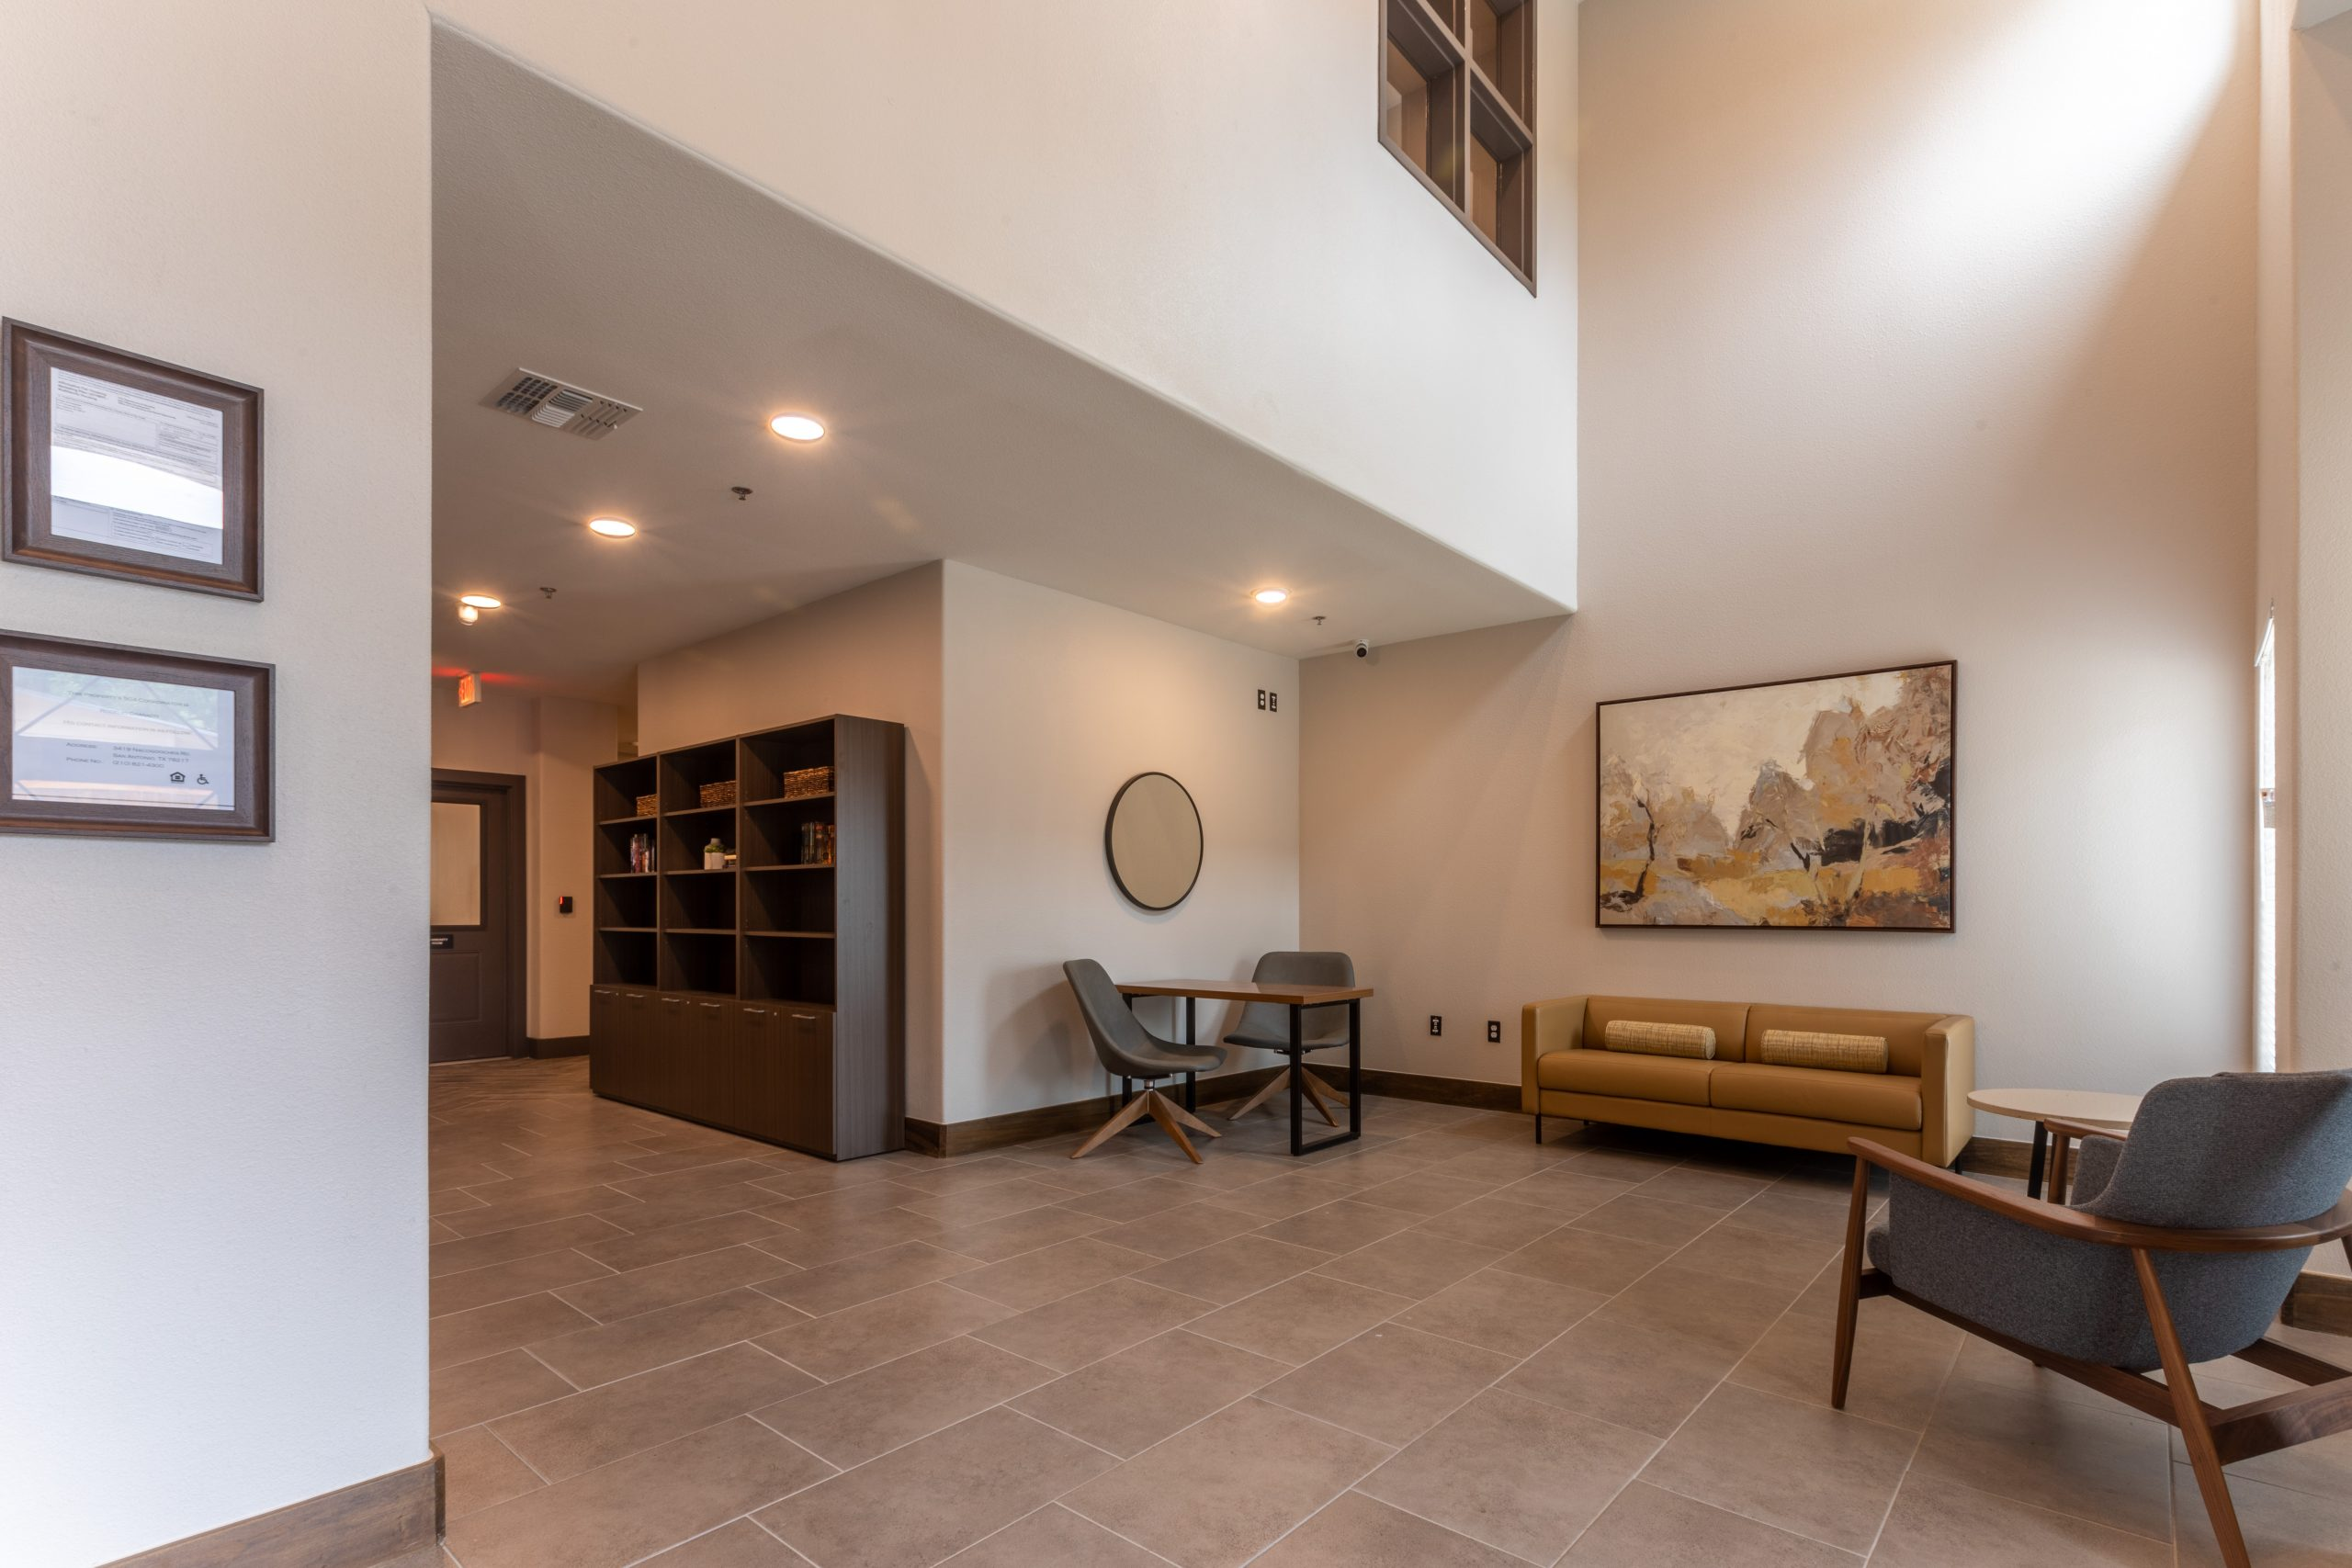 Lobby area with table, chairs and couch